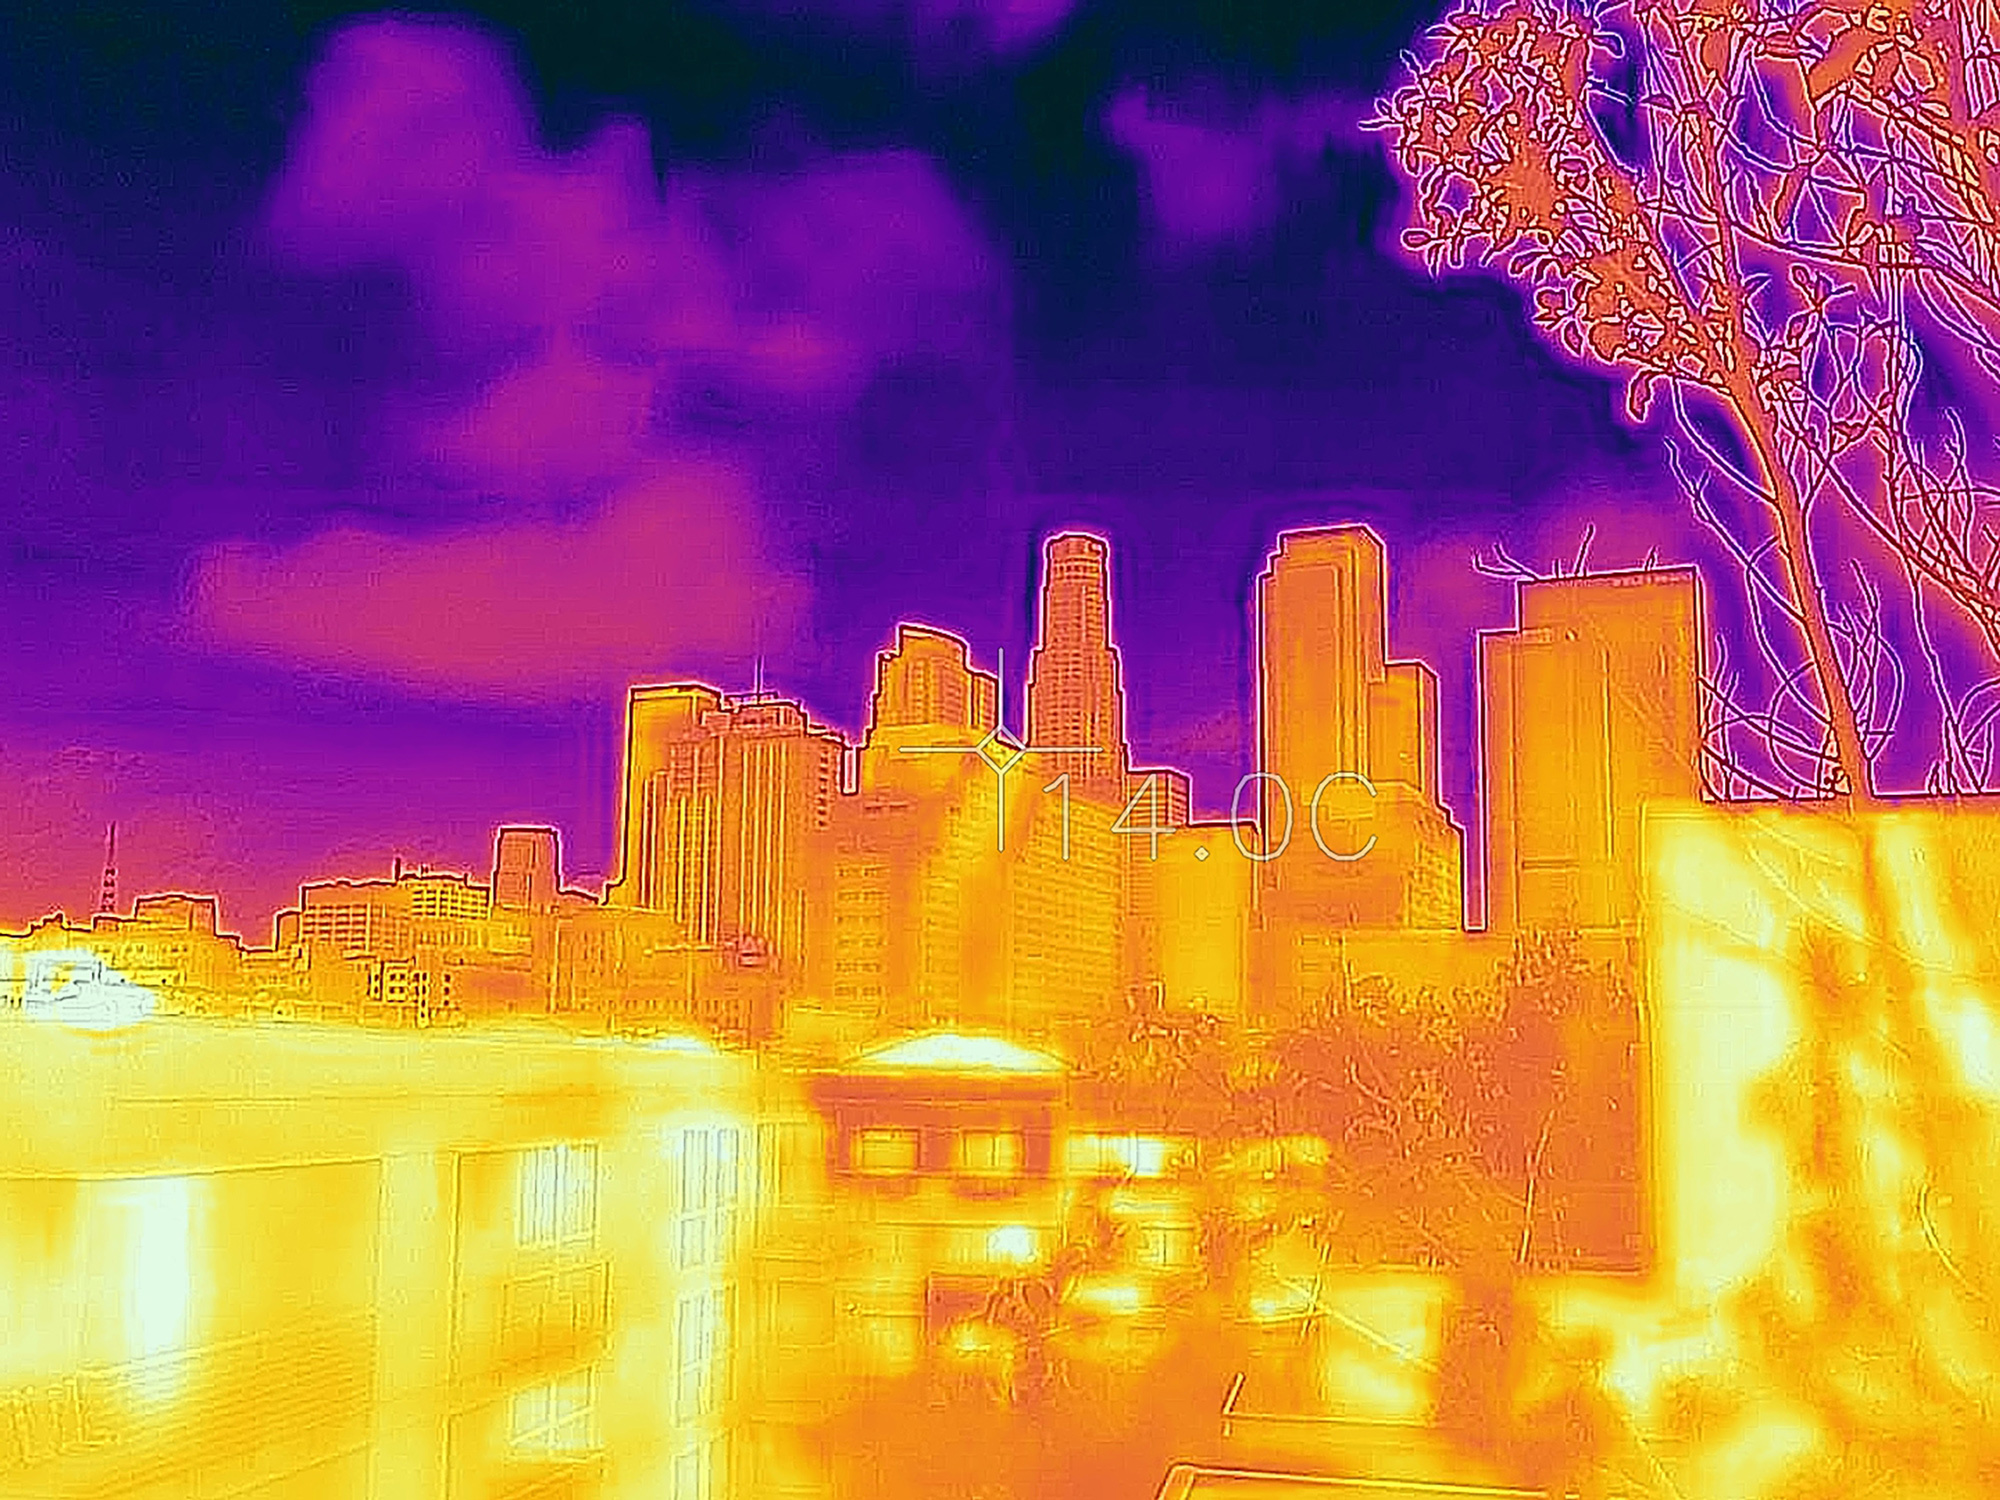 infrared cityscape purple pink orange yellow